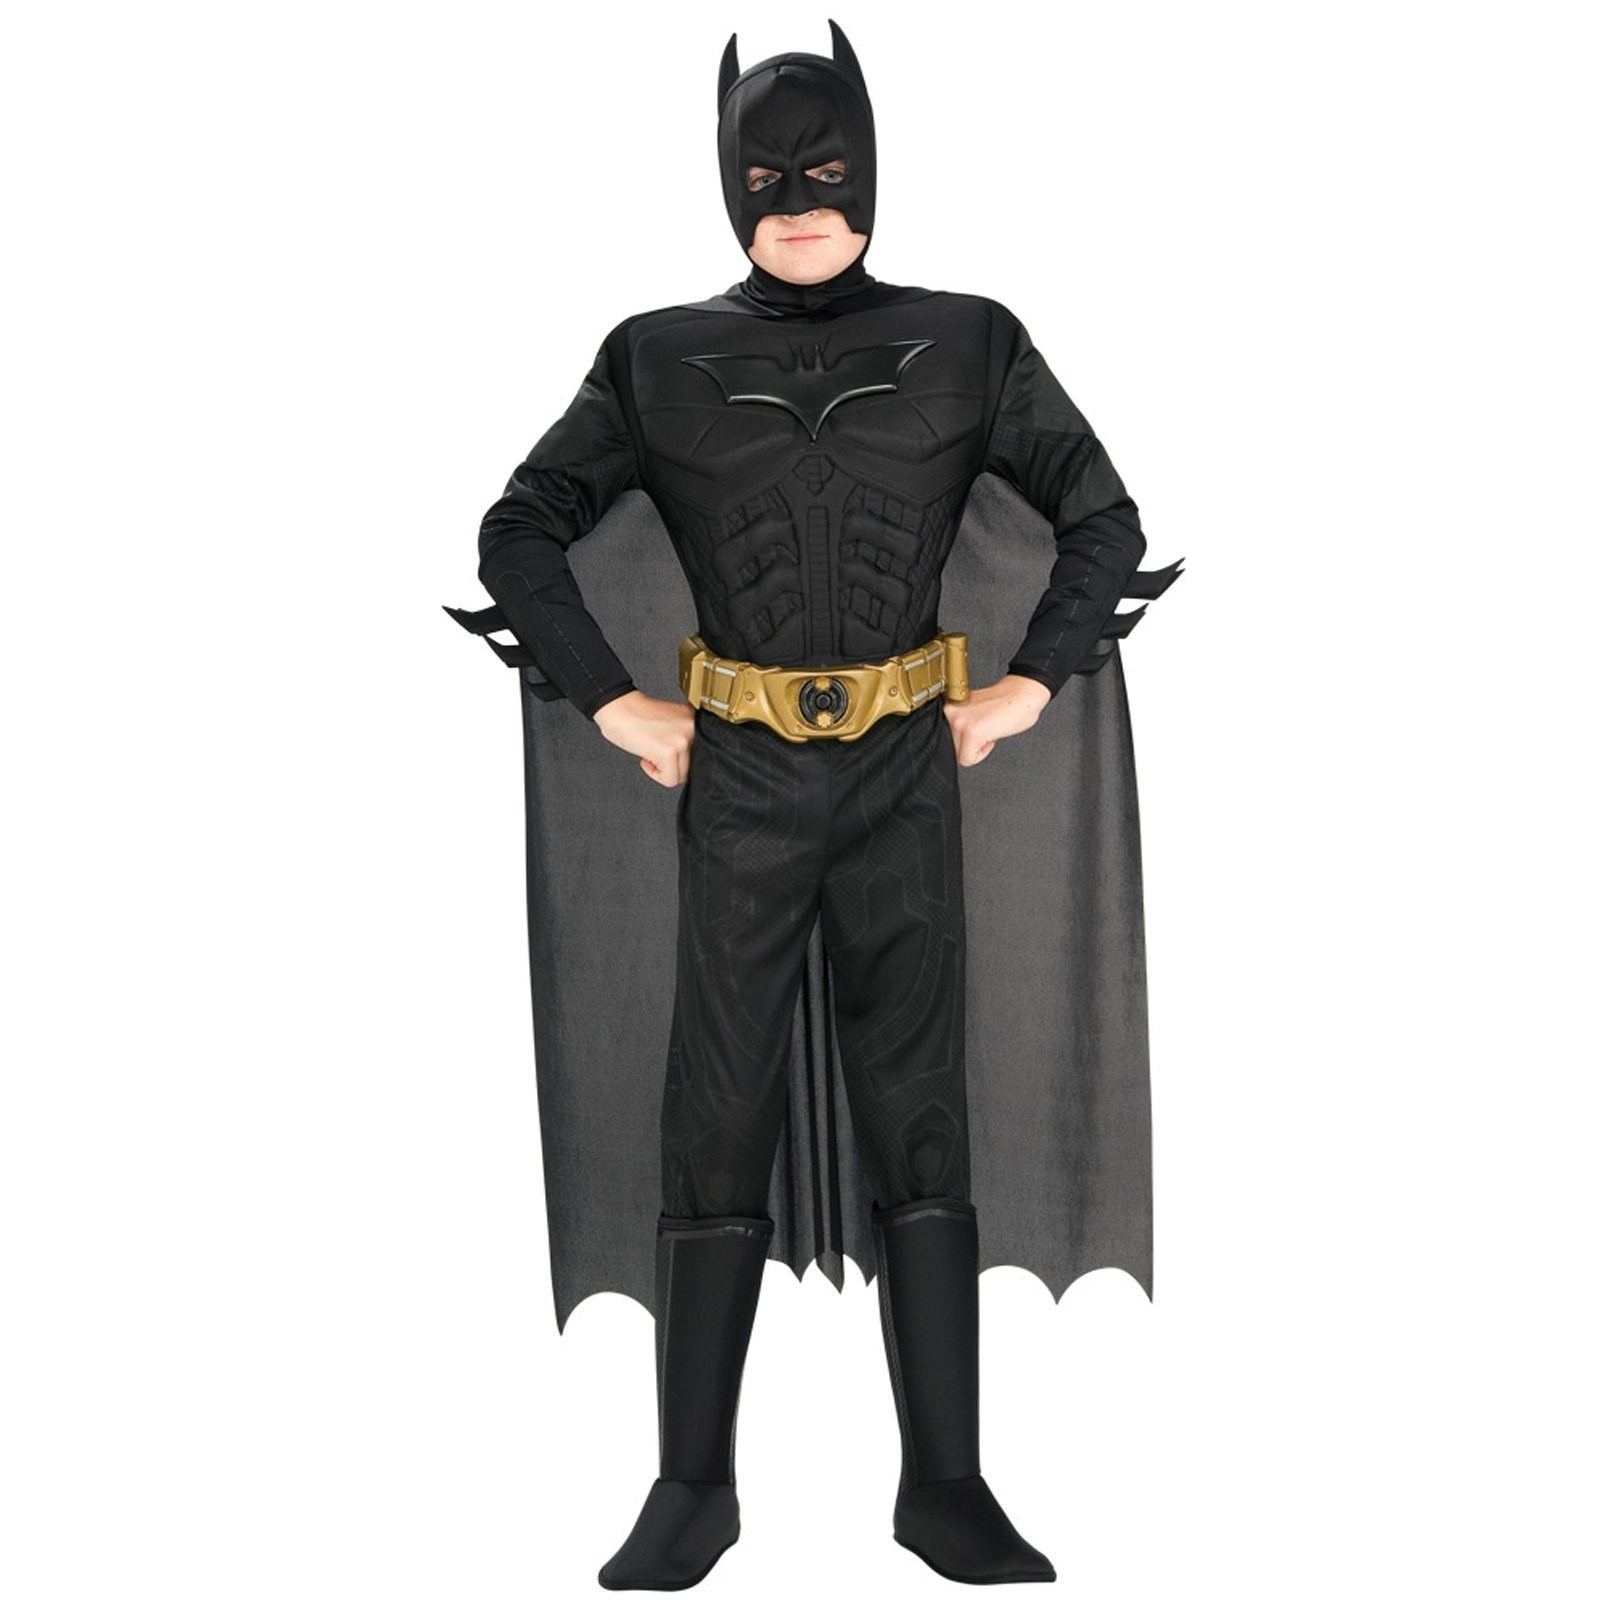 Batman The Dark Knight Rises Muscle Kids Costume 8-10